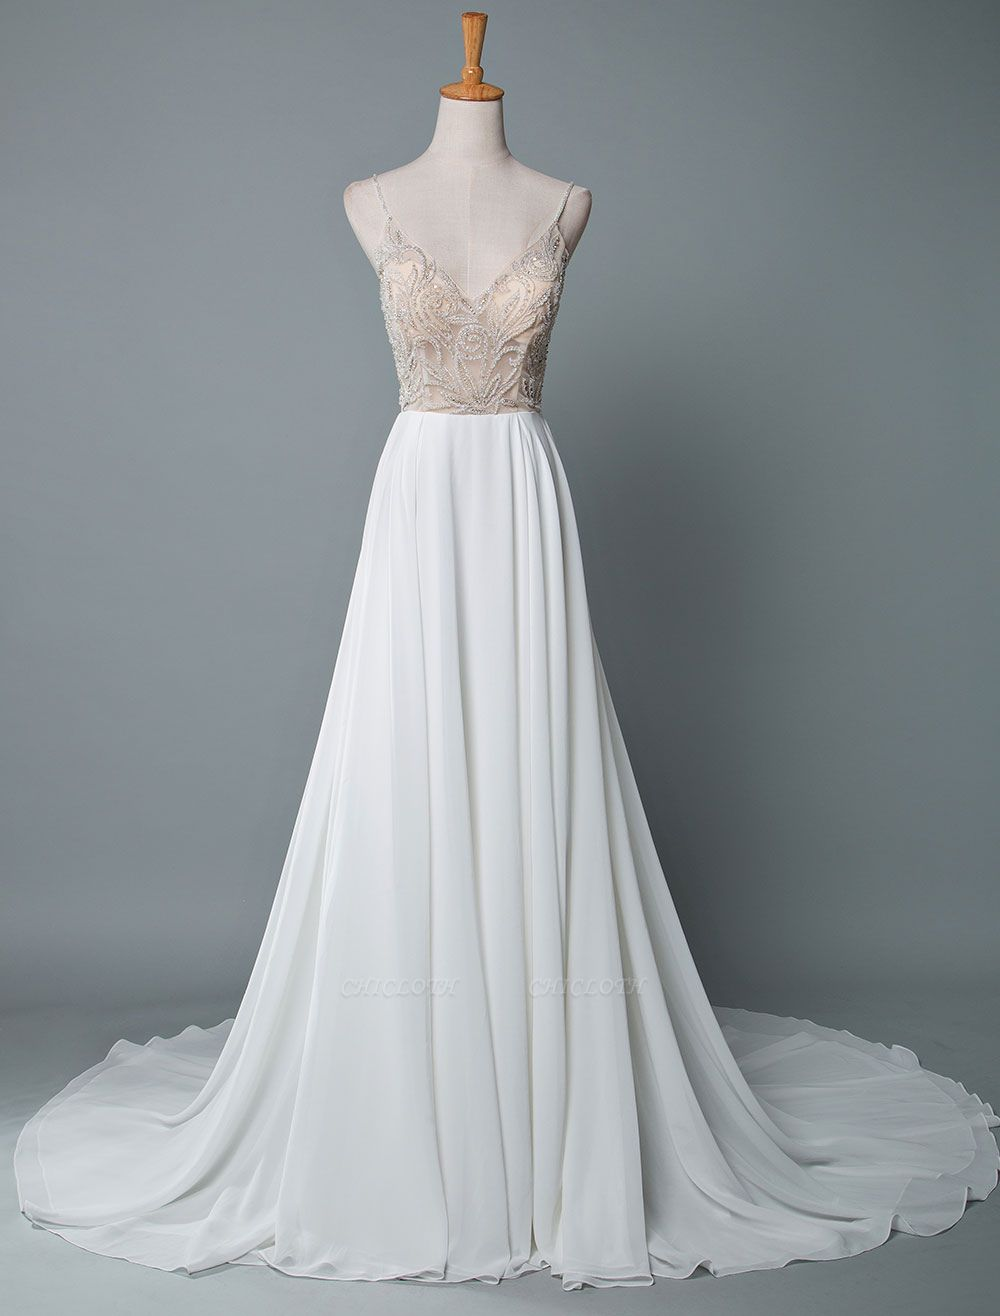 Simple Wedding Gowns A Line V Neck Sleeveless Embroidered Chiffon Bridal Gowns With Train